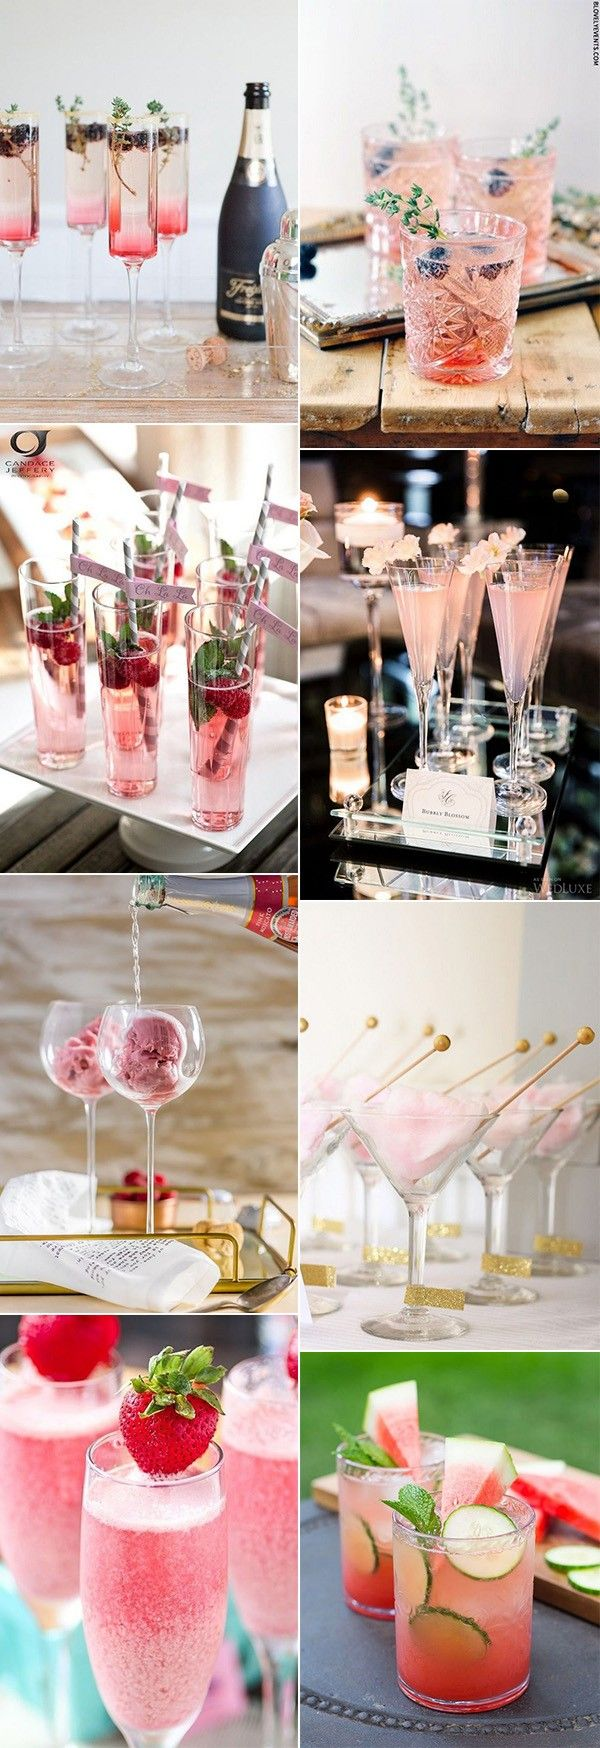 15 Unique Wedding Signature Drink Ideas for Your Big Day – Page 2 of 2